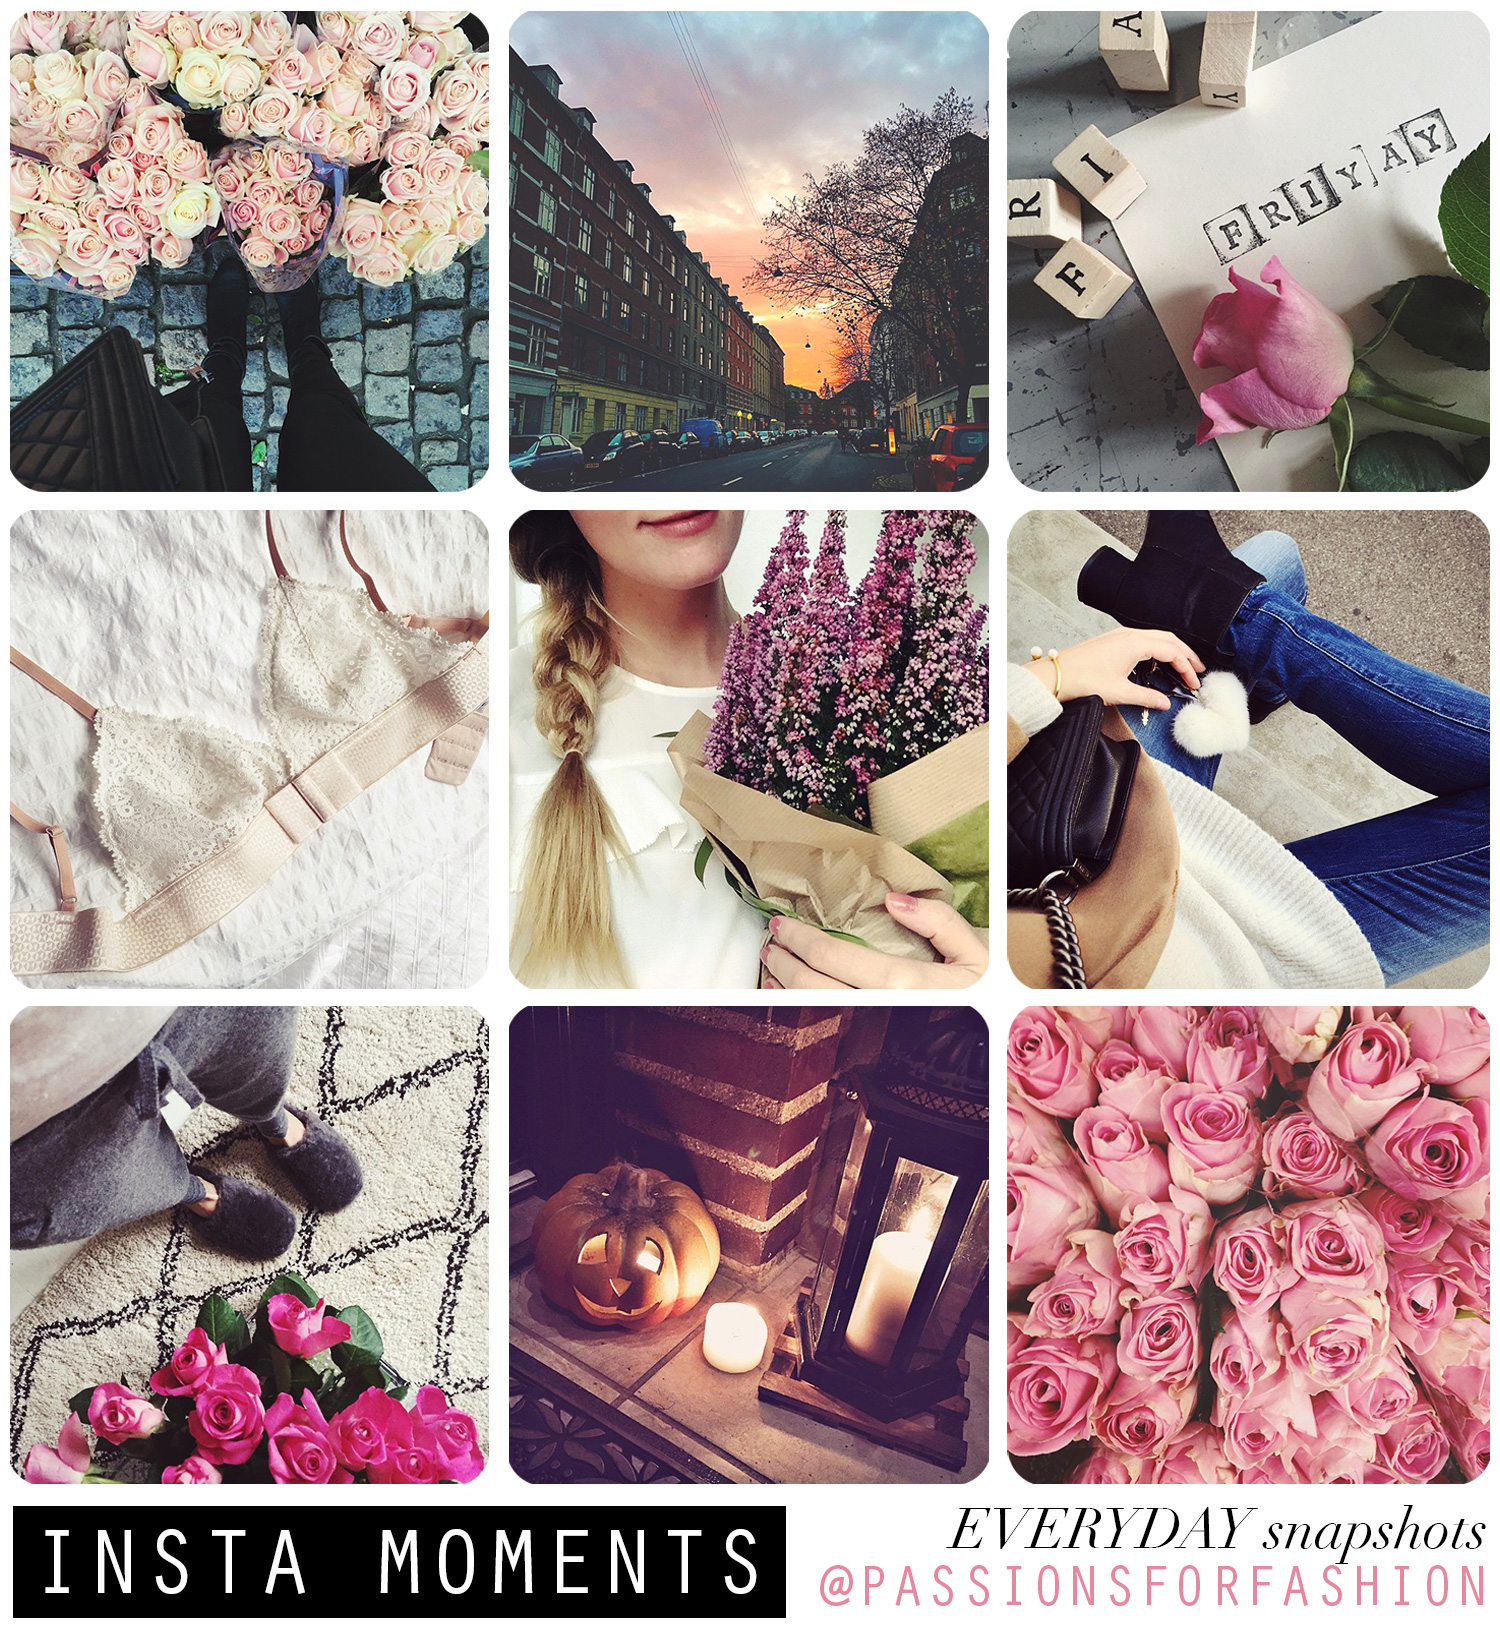 instagram-passions-for-fashion@2x